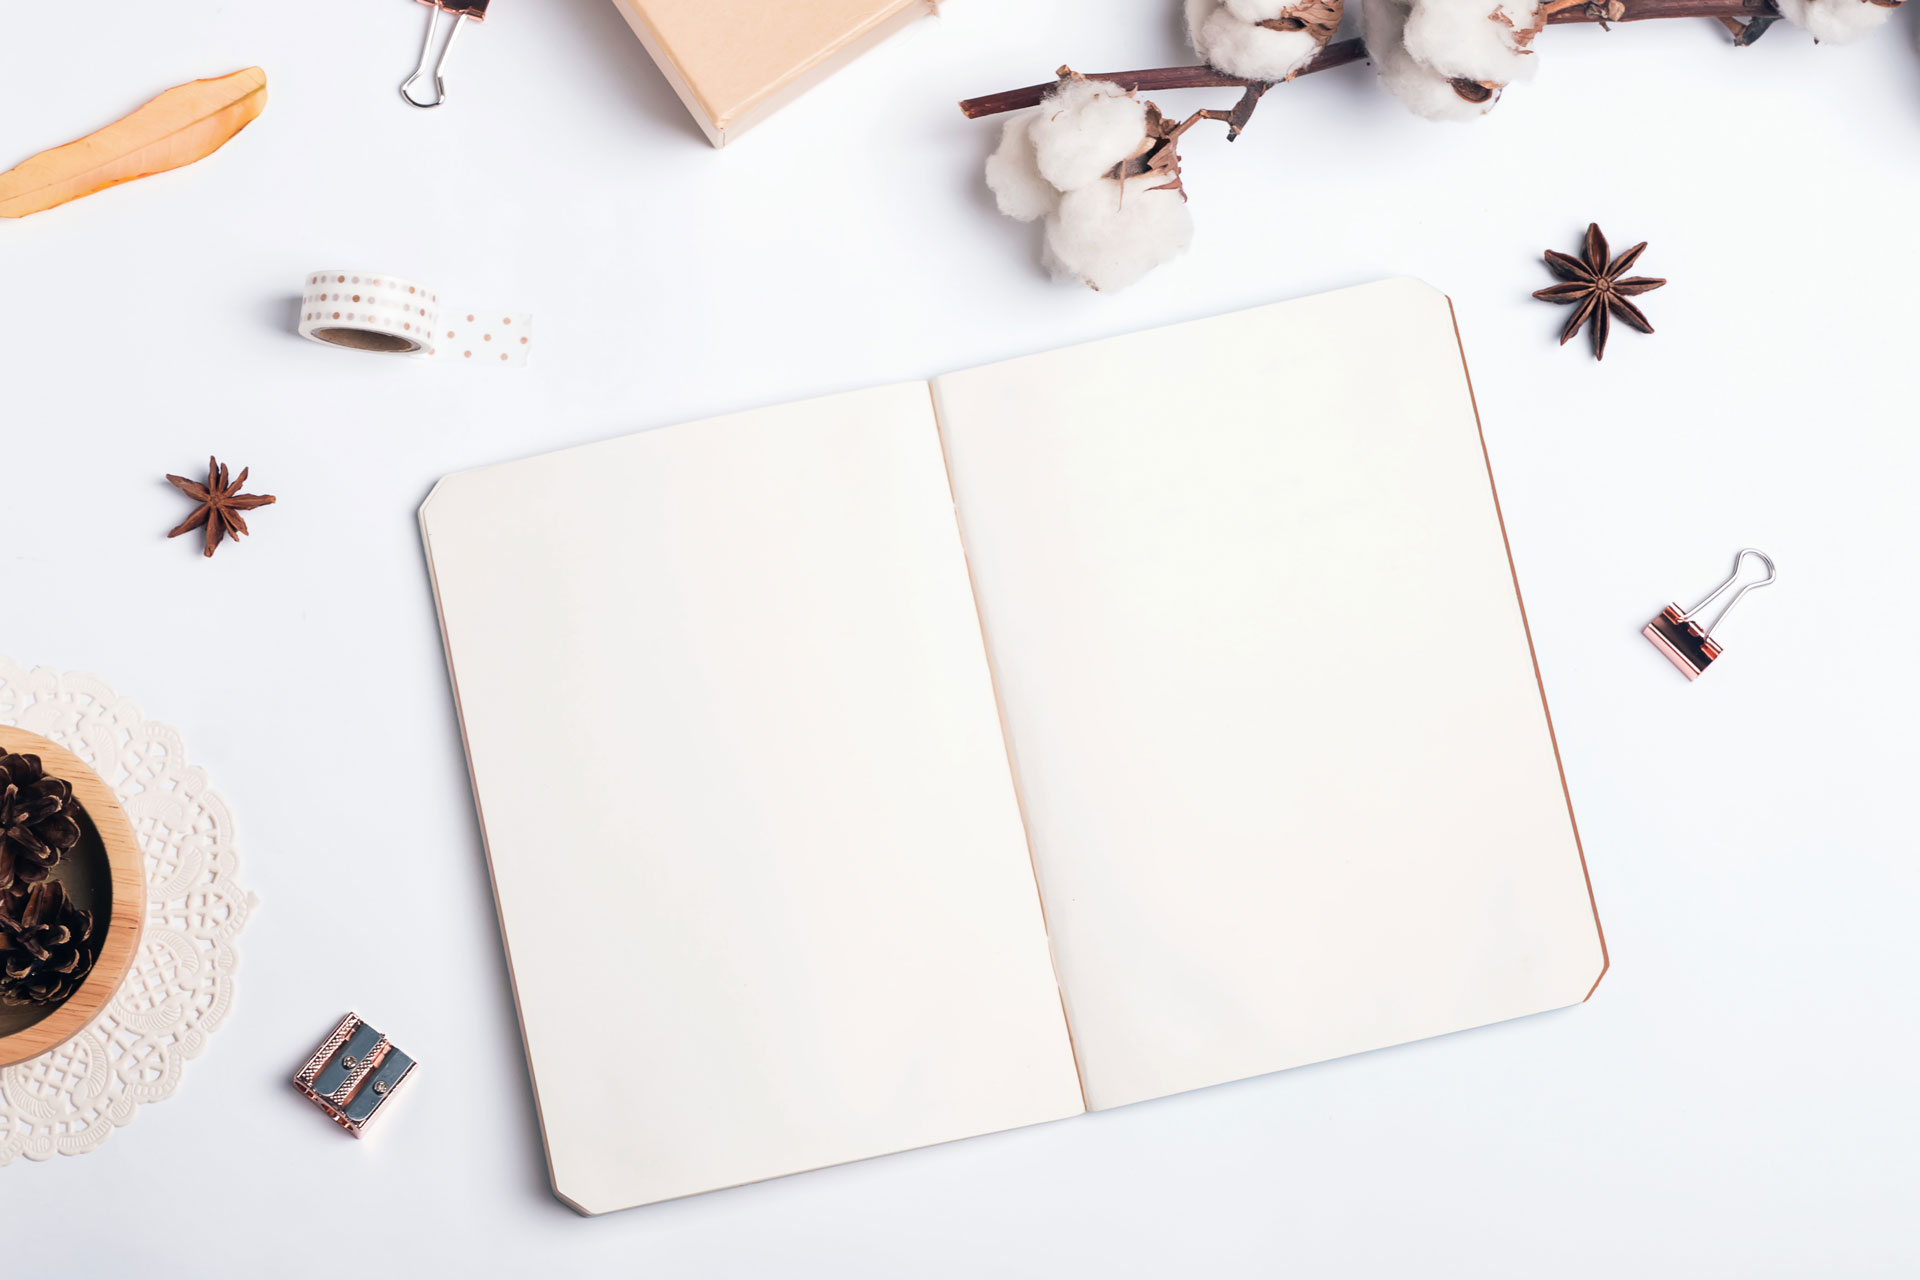 Eco friendly notebook open on white table, surrounded by binder clips and star anise